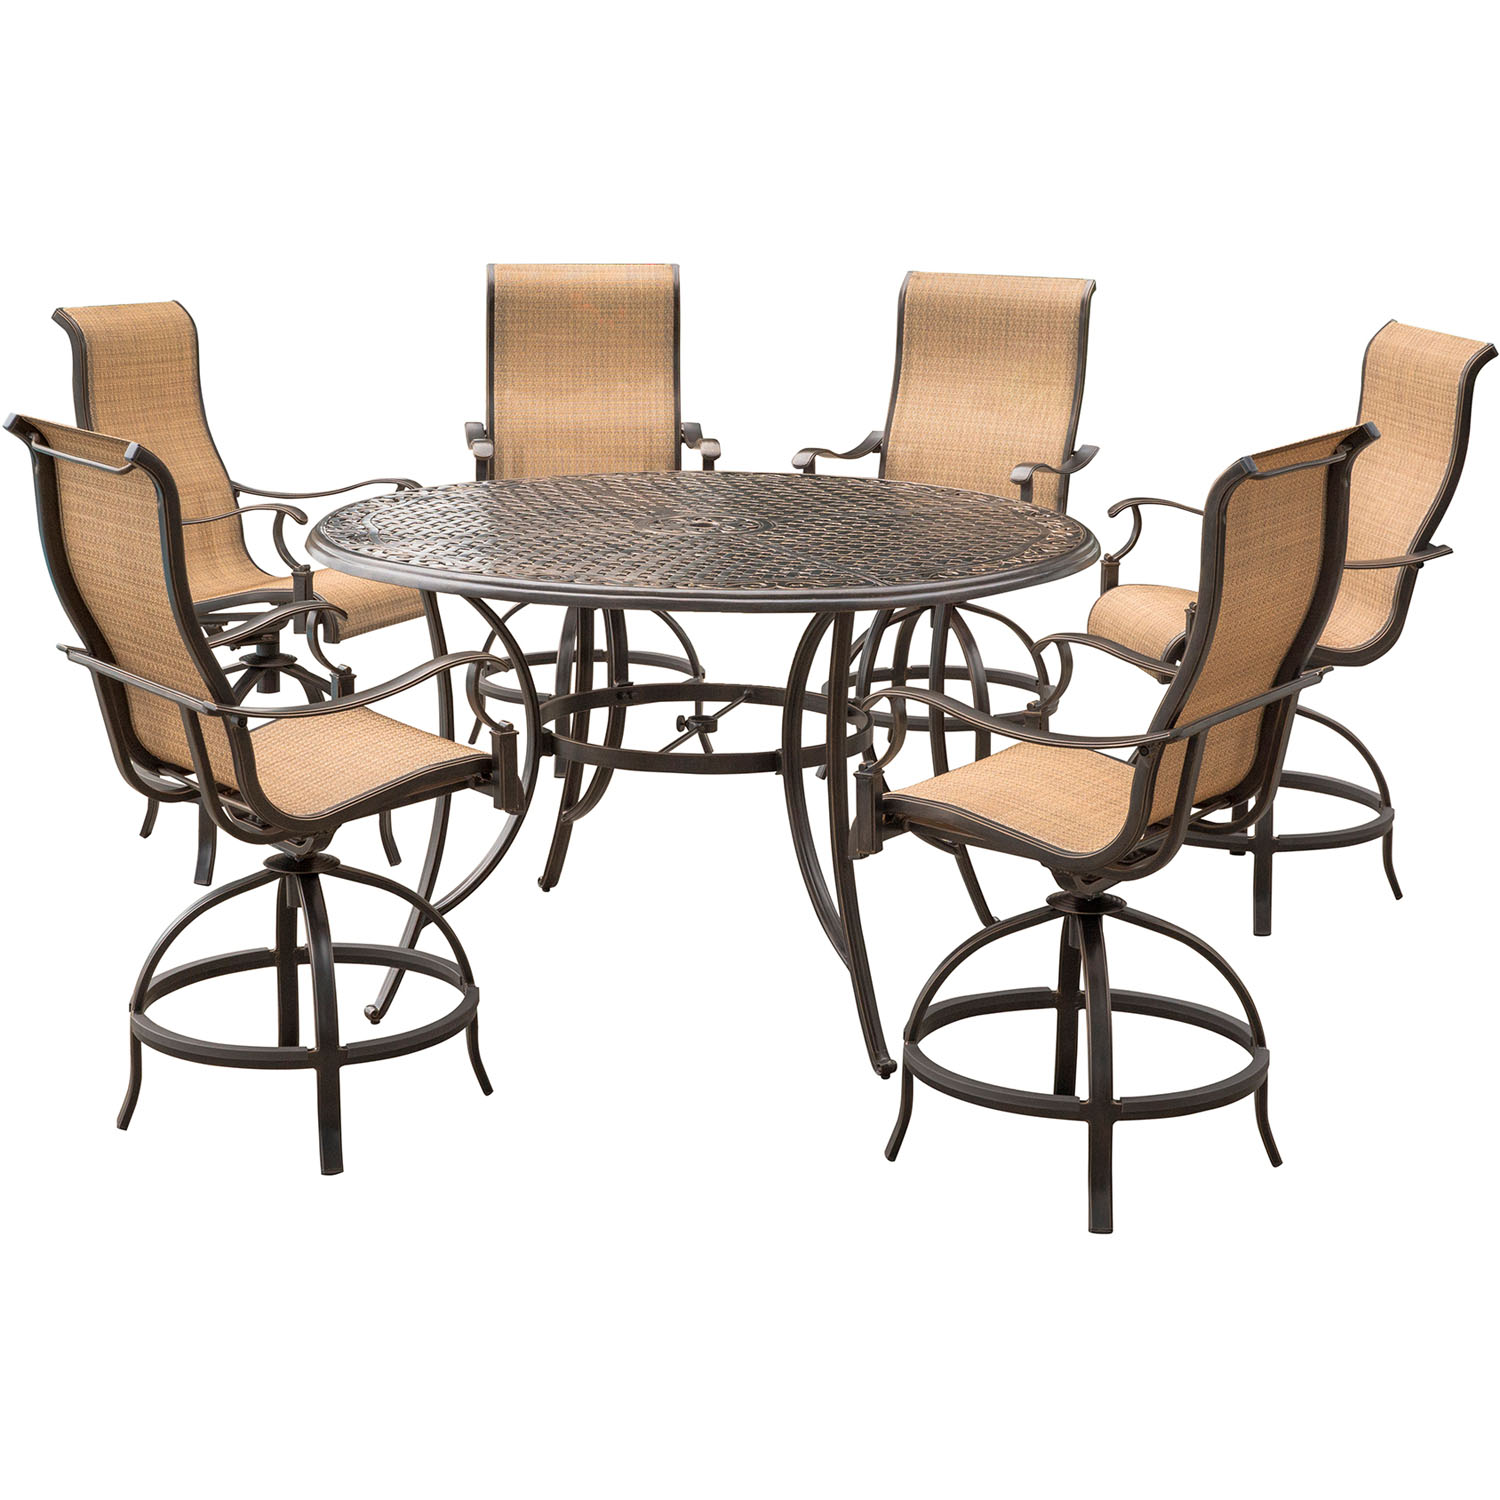 High Dinner Table Set: Hanover Manor 7-Piece High-Dining Set With 6 Contoured